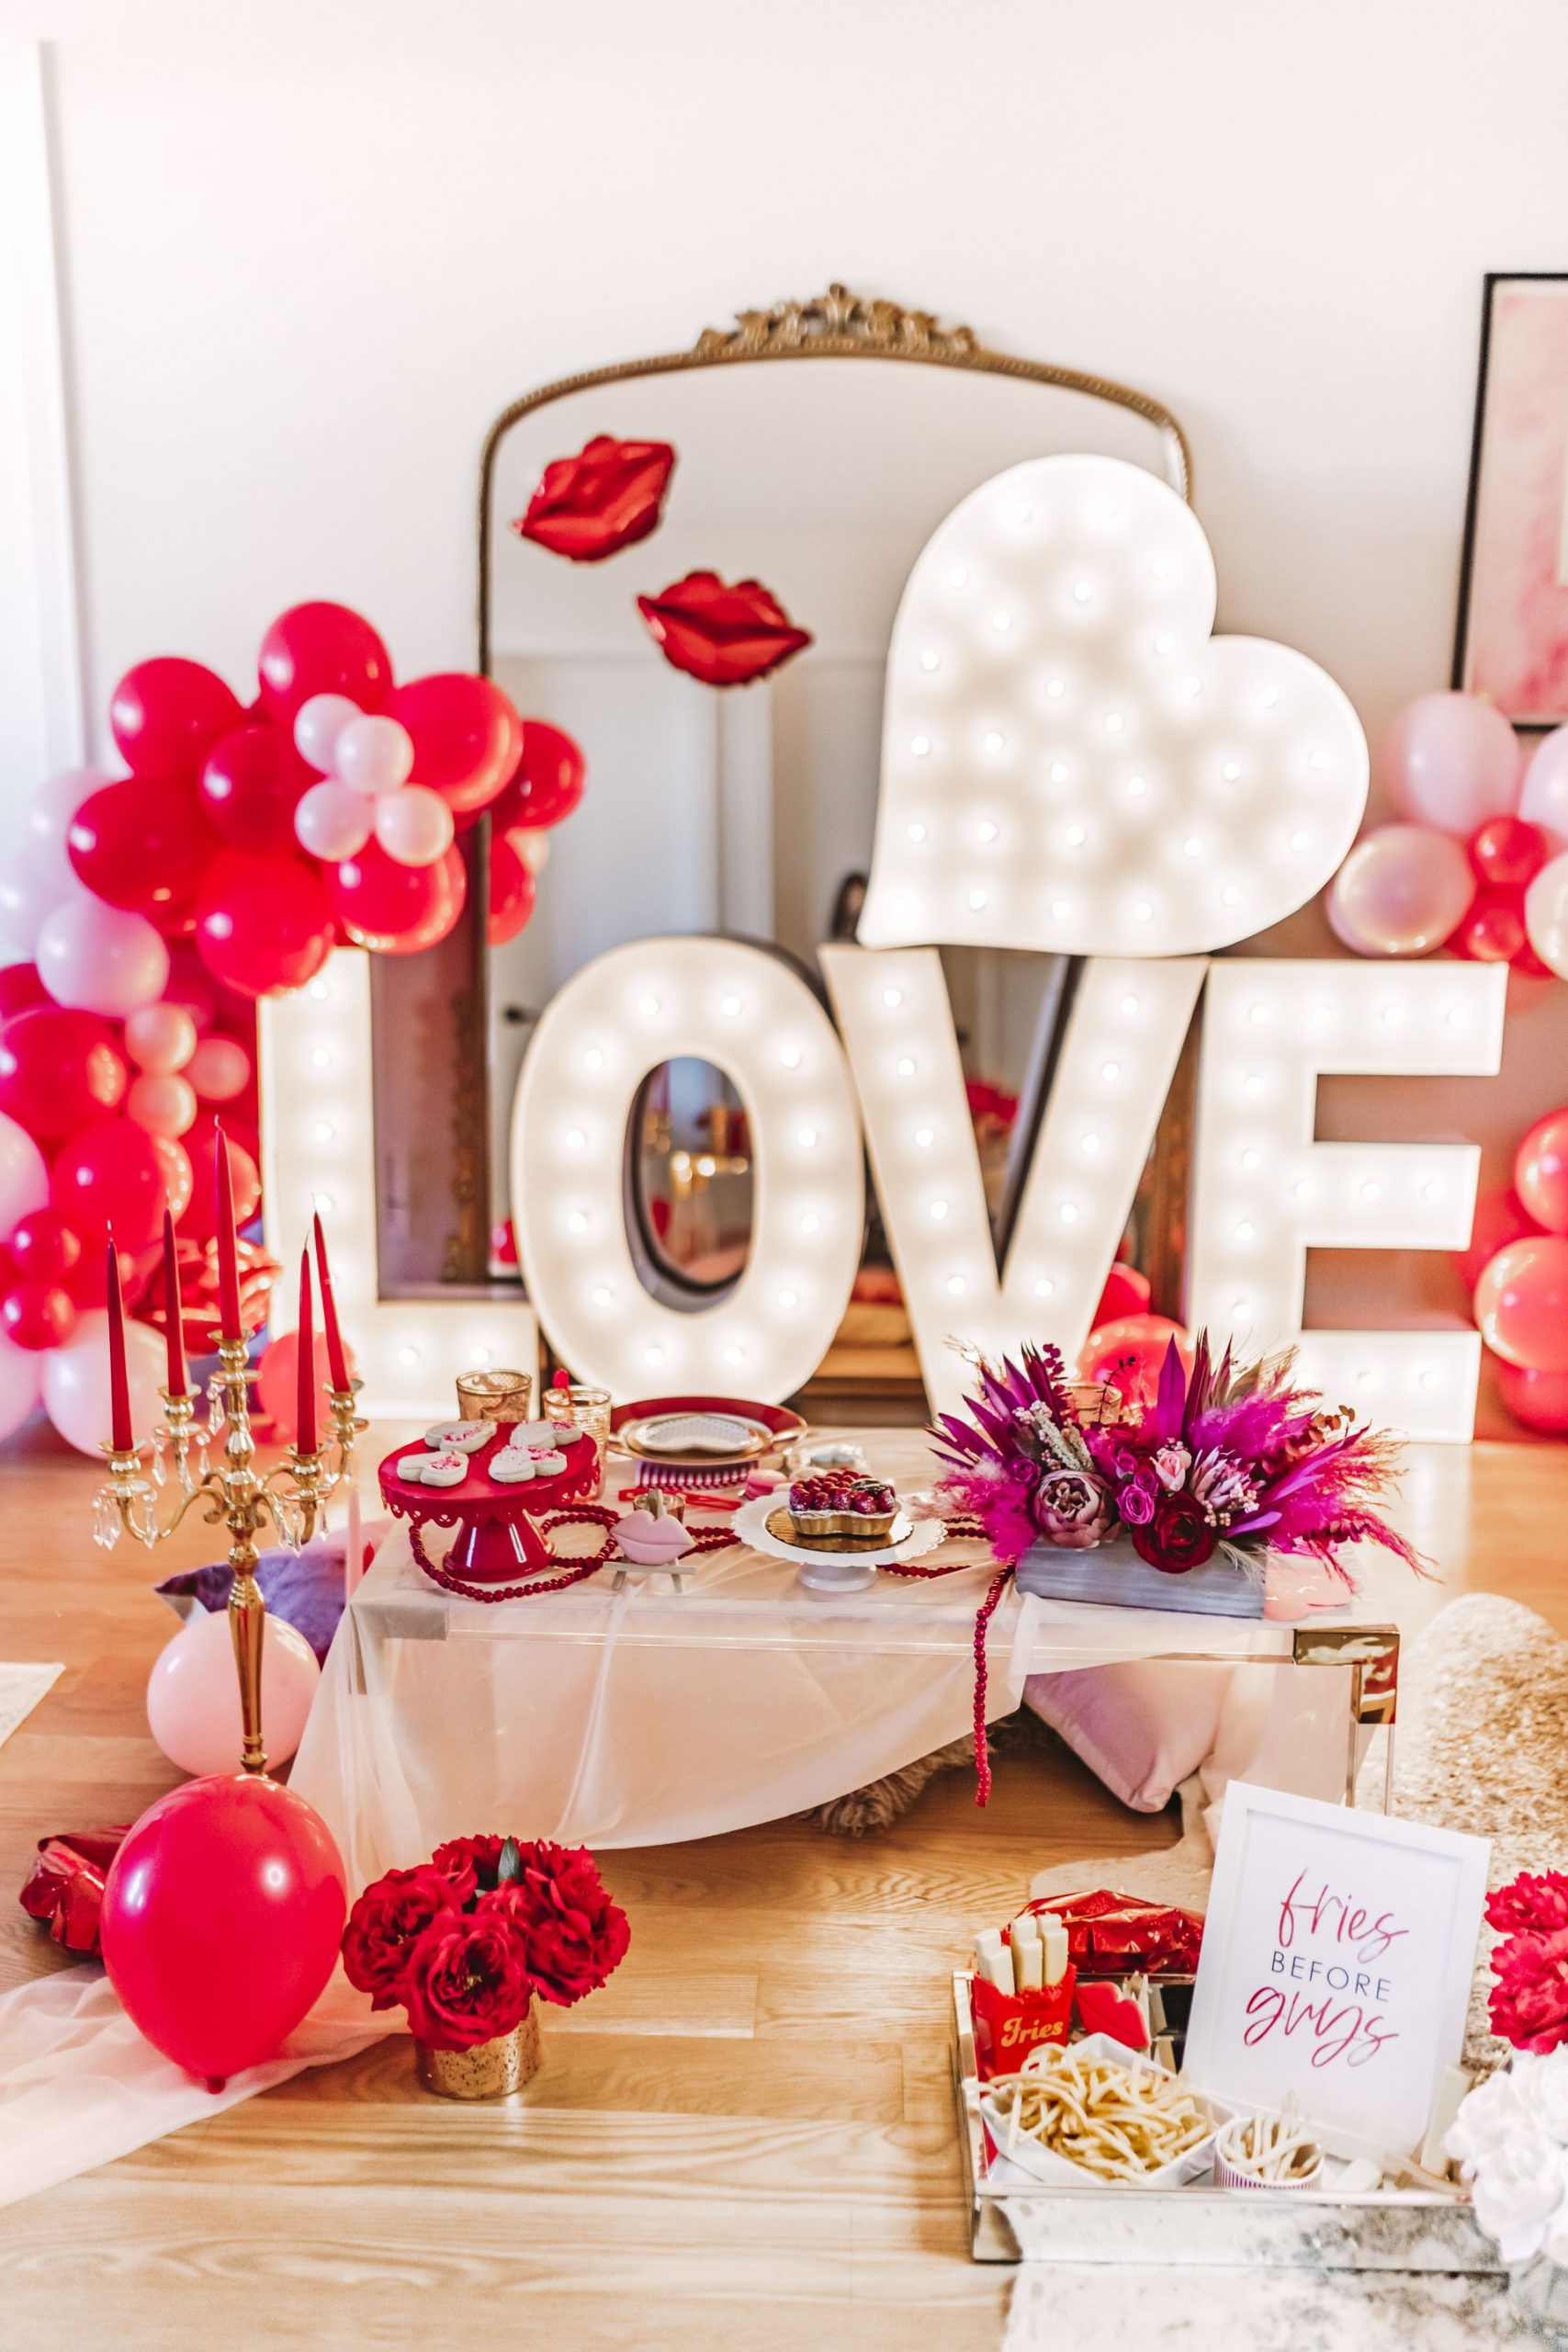 glam Valentine's and Galentine's party, Glam Party Decor Ideas, Galentine's party decor, Valentine's day party decor, girls night party decor ideas, Vday party decorations, pink and red party theme, girly party theme decor, love party theme decor, valentines day party ideas, valentines day party ideas for adults,  light up marquee letters for parties, pink and red balloon ideas, pink and red floral ideas, intimate party table setting ideas, Red Soles and Red Wine